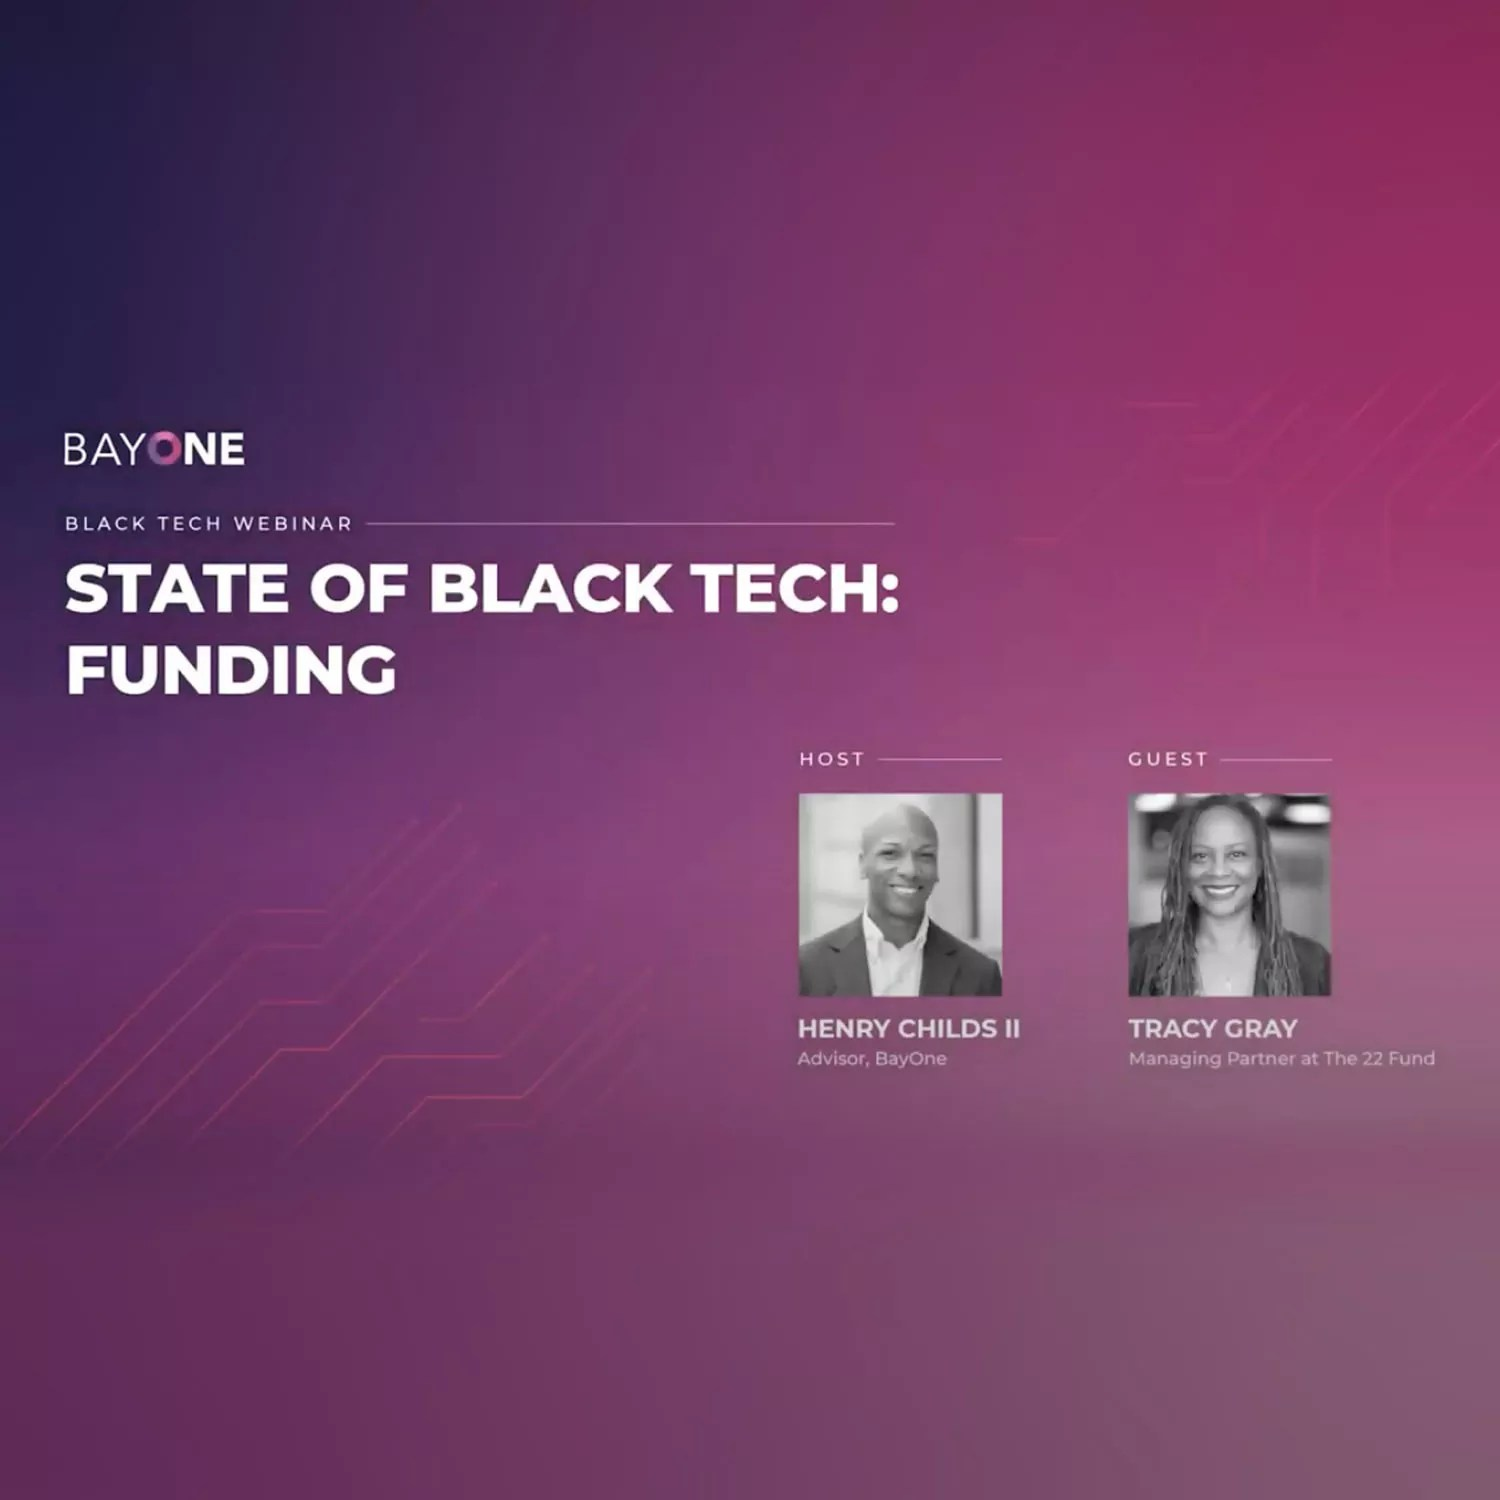 The State of Black Tech